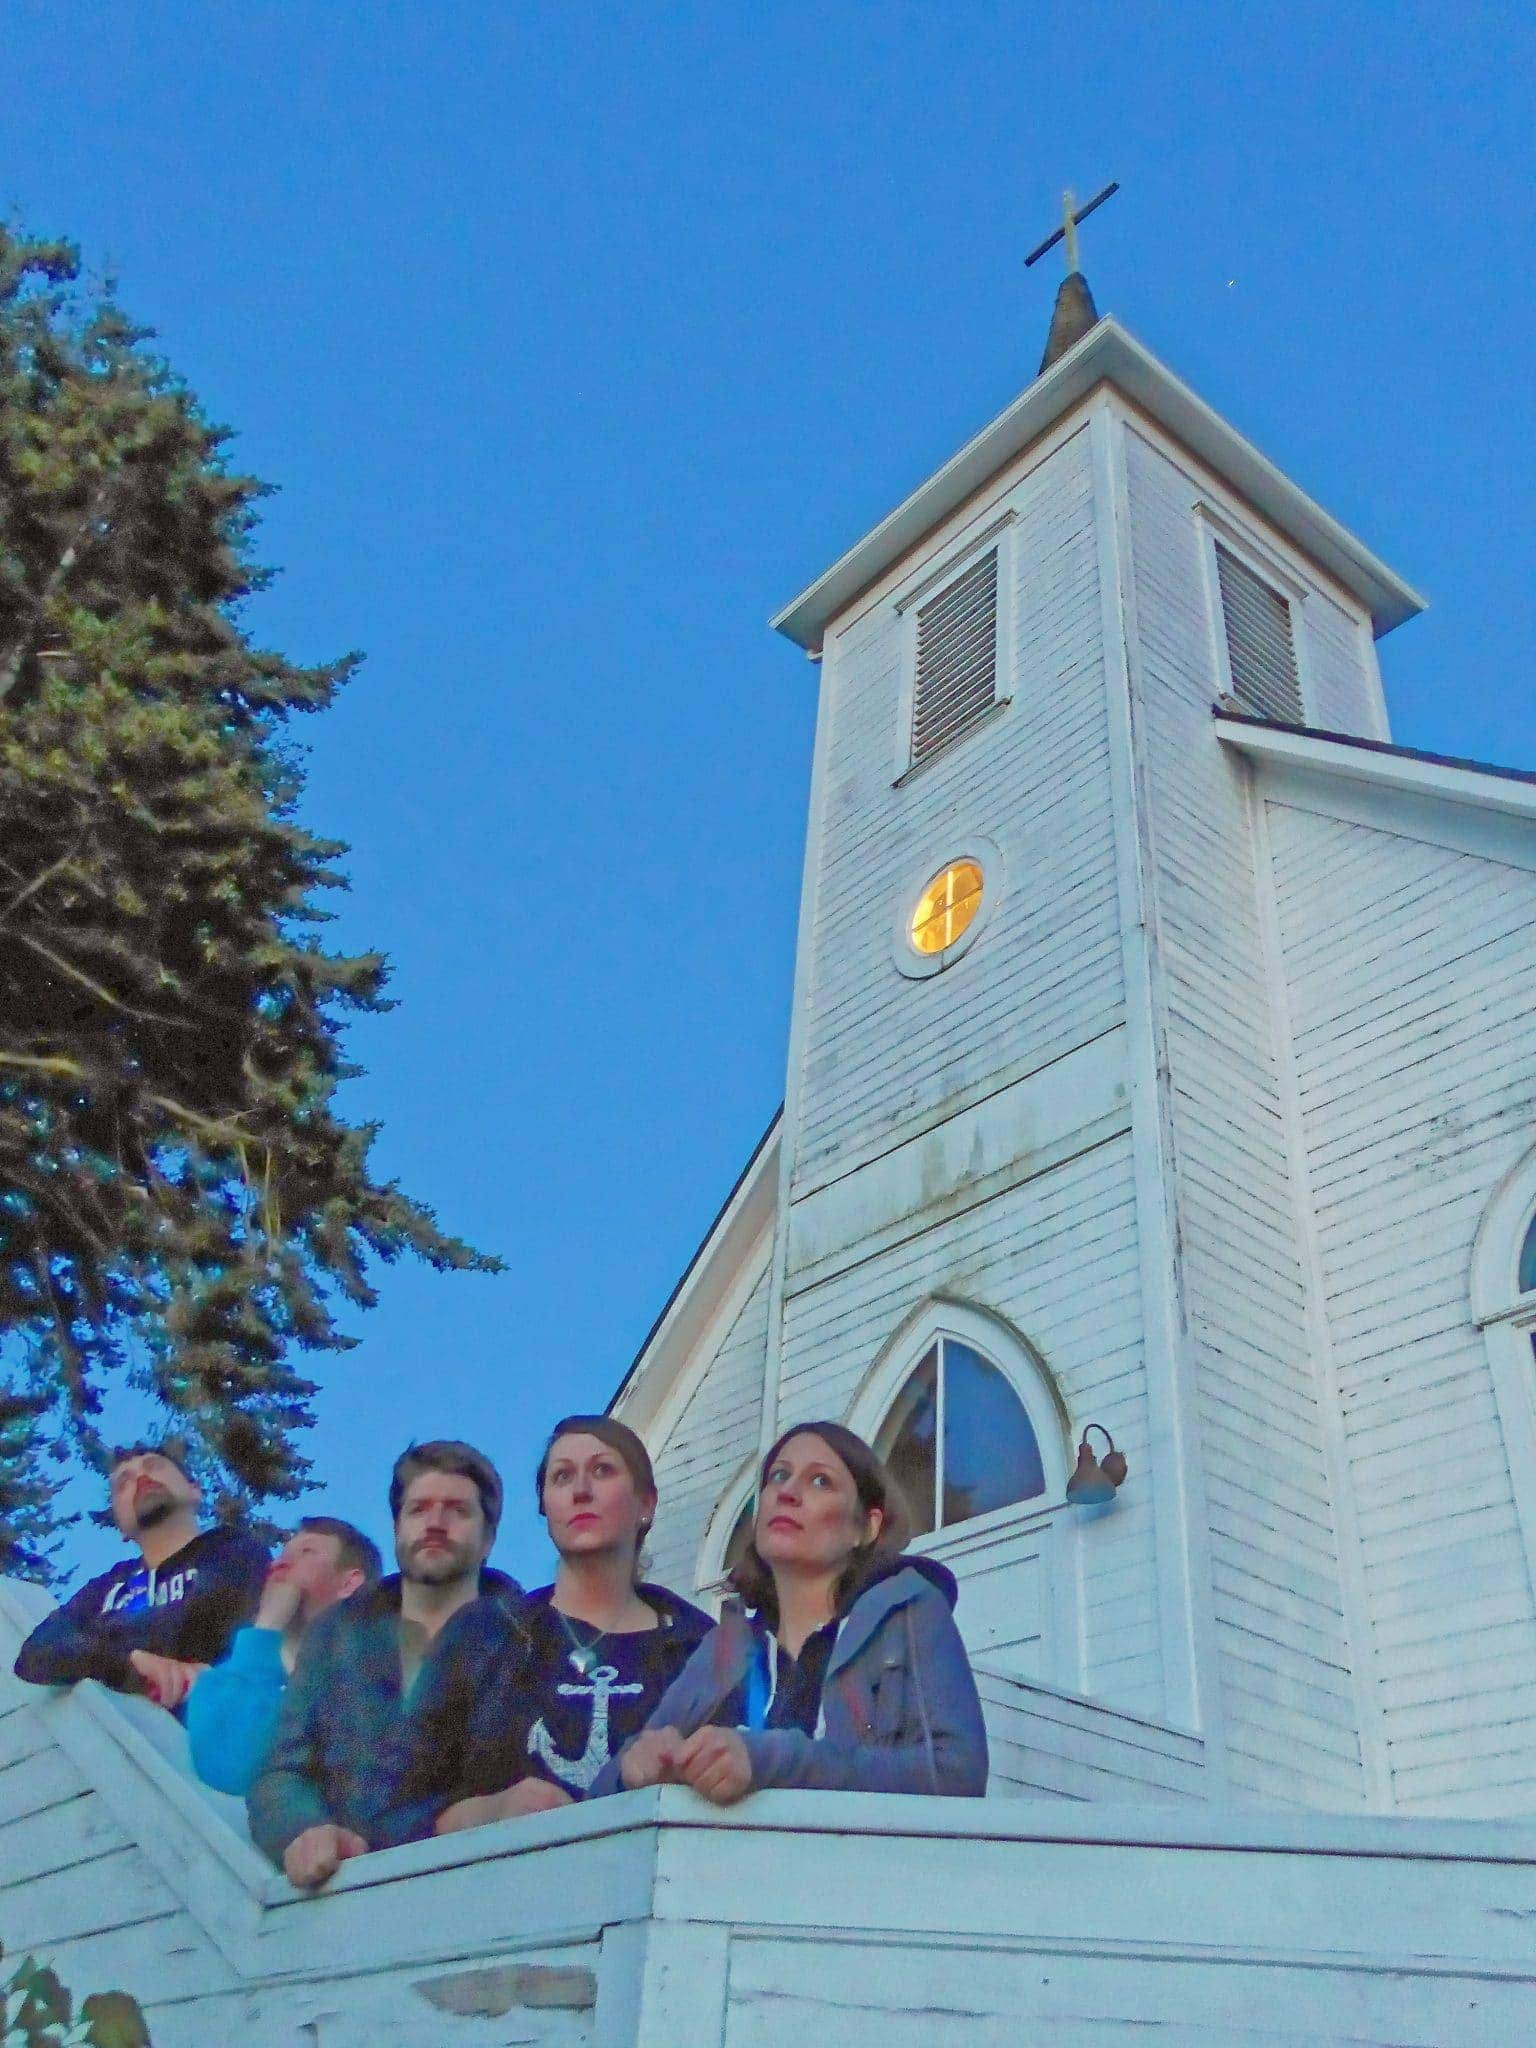 The gang posing for our 80's album cover in front of the Lummi Island Church